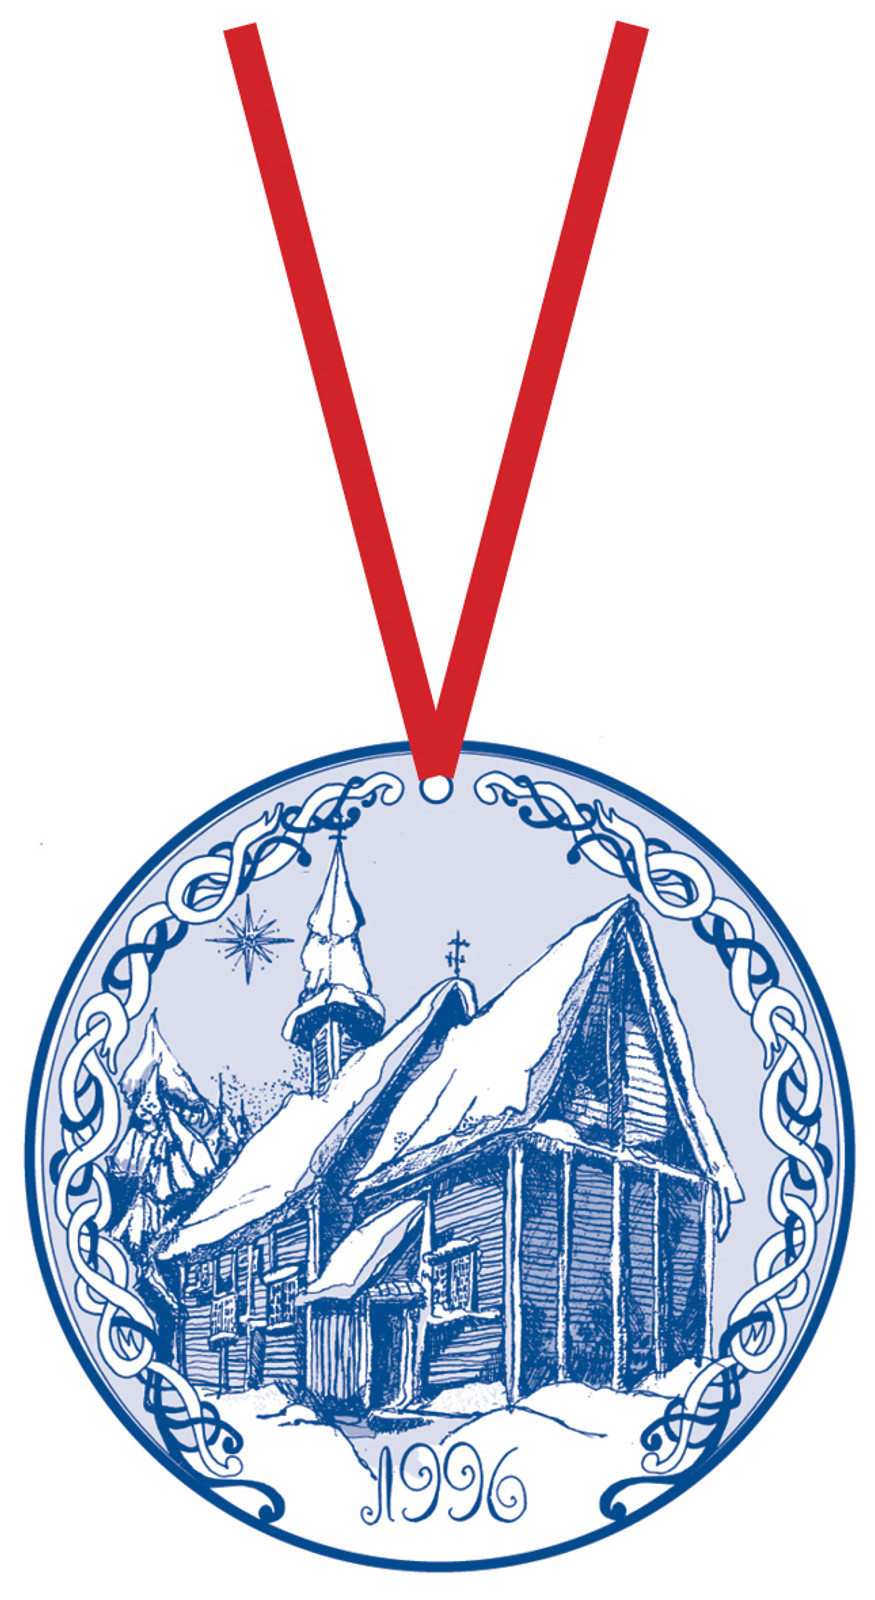 1996 Stav Church Ornament - Lomen. Made by Norse Traditions and available at The Nordic Shop.